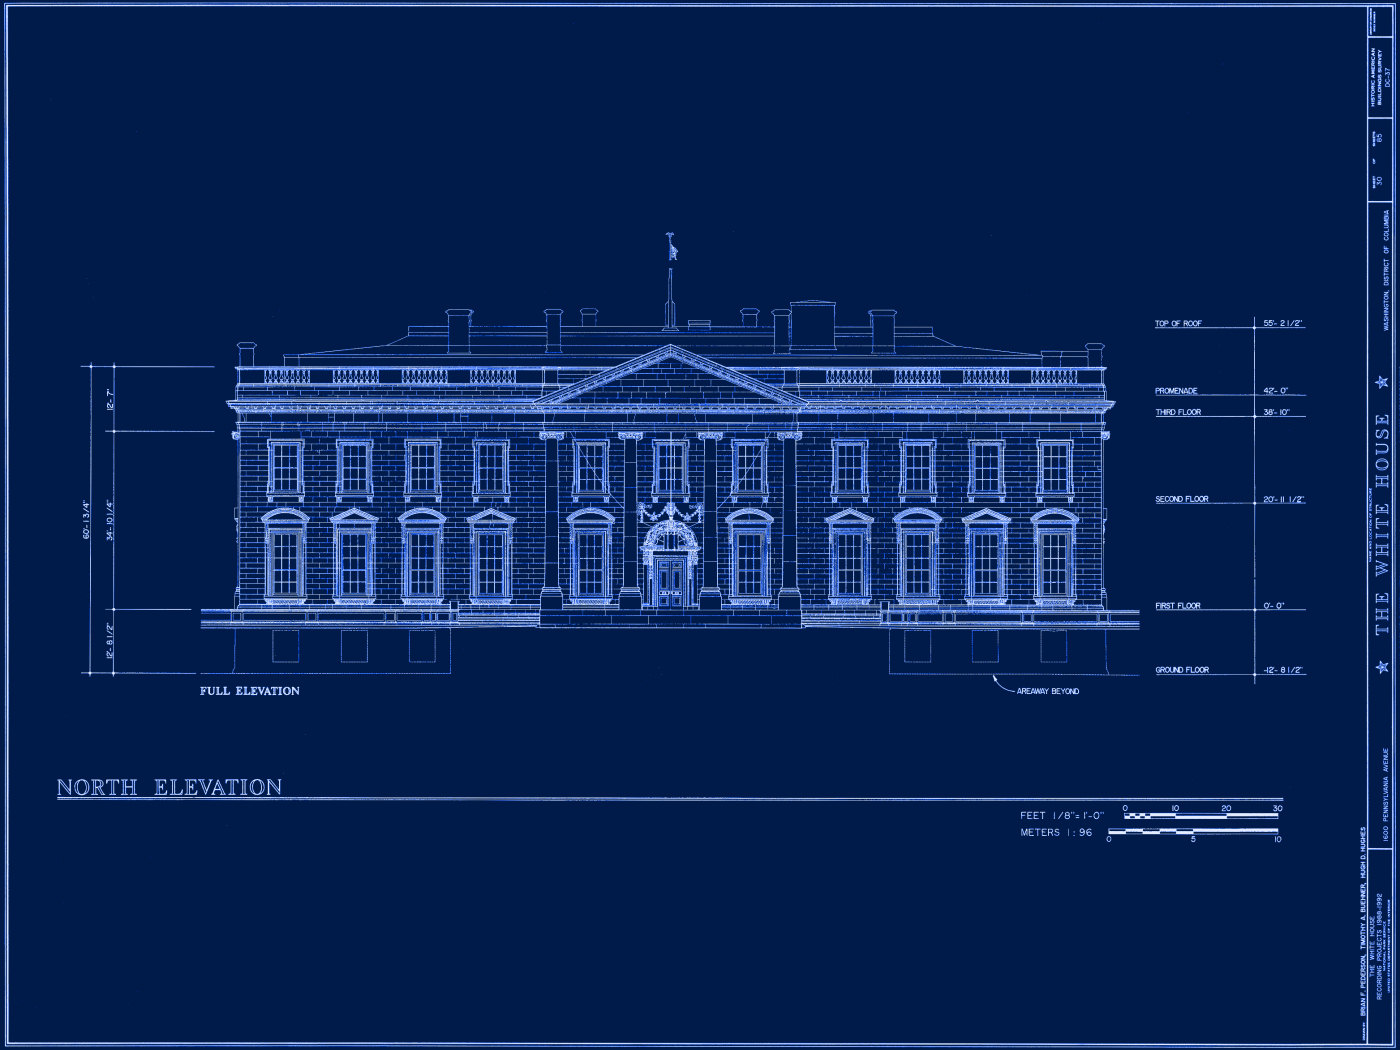 Pin white house blueprints on pinterest for House blueprint images